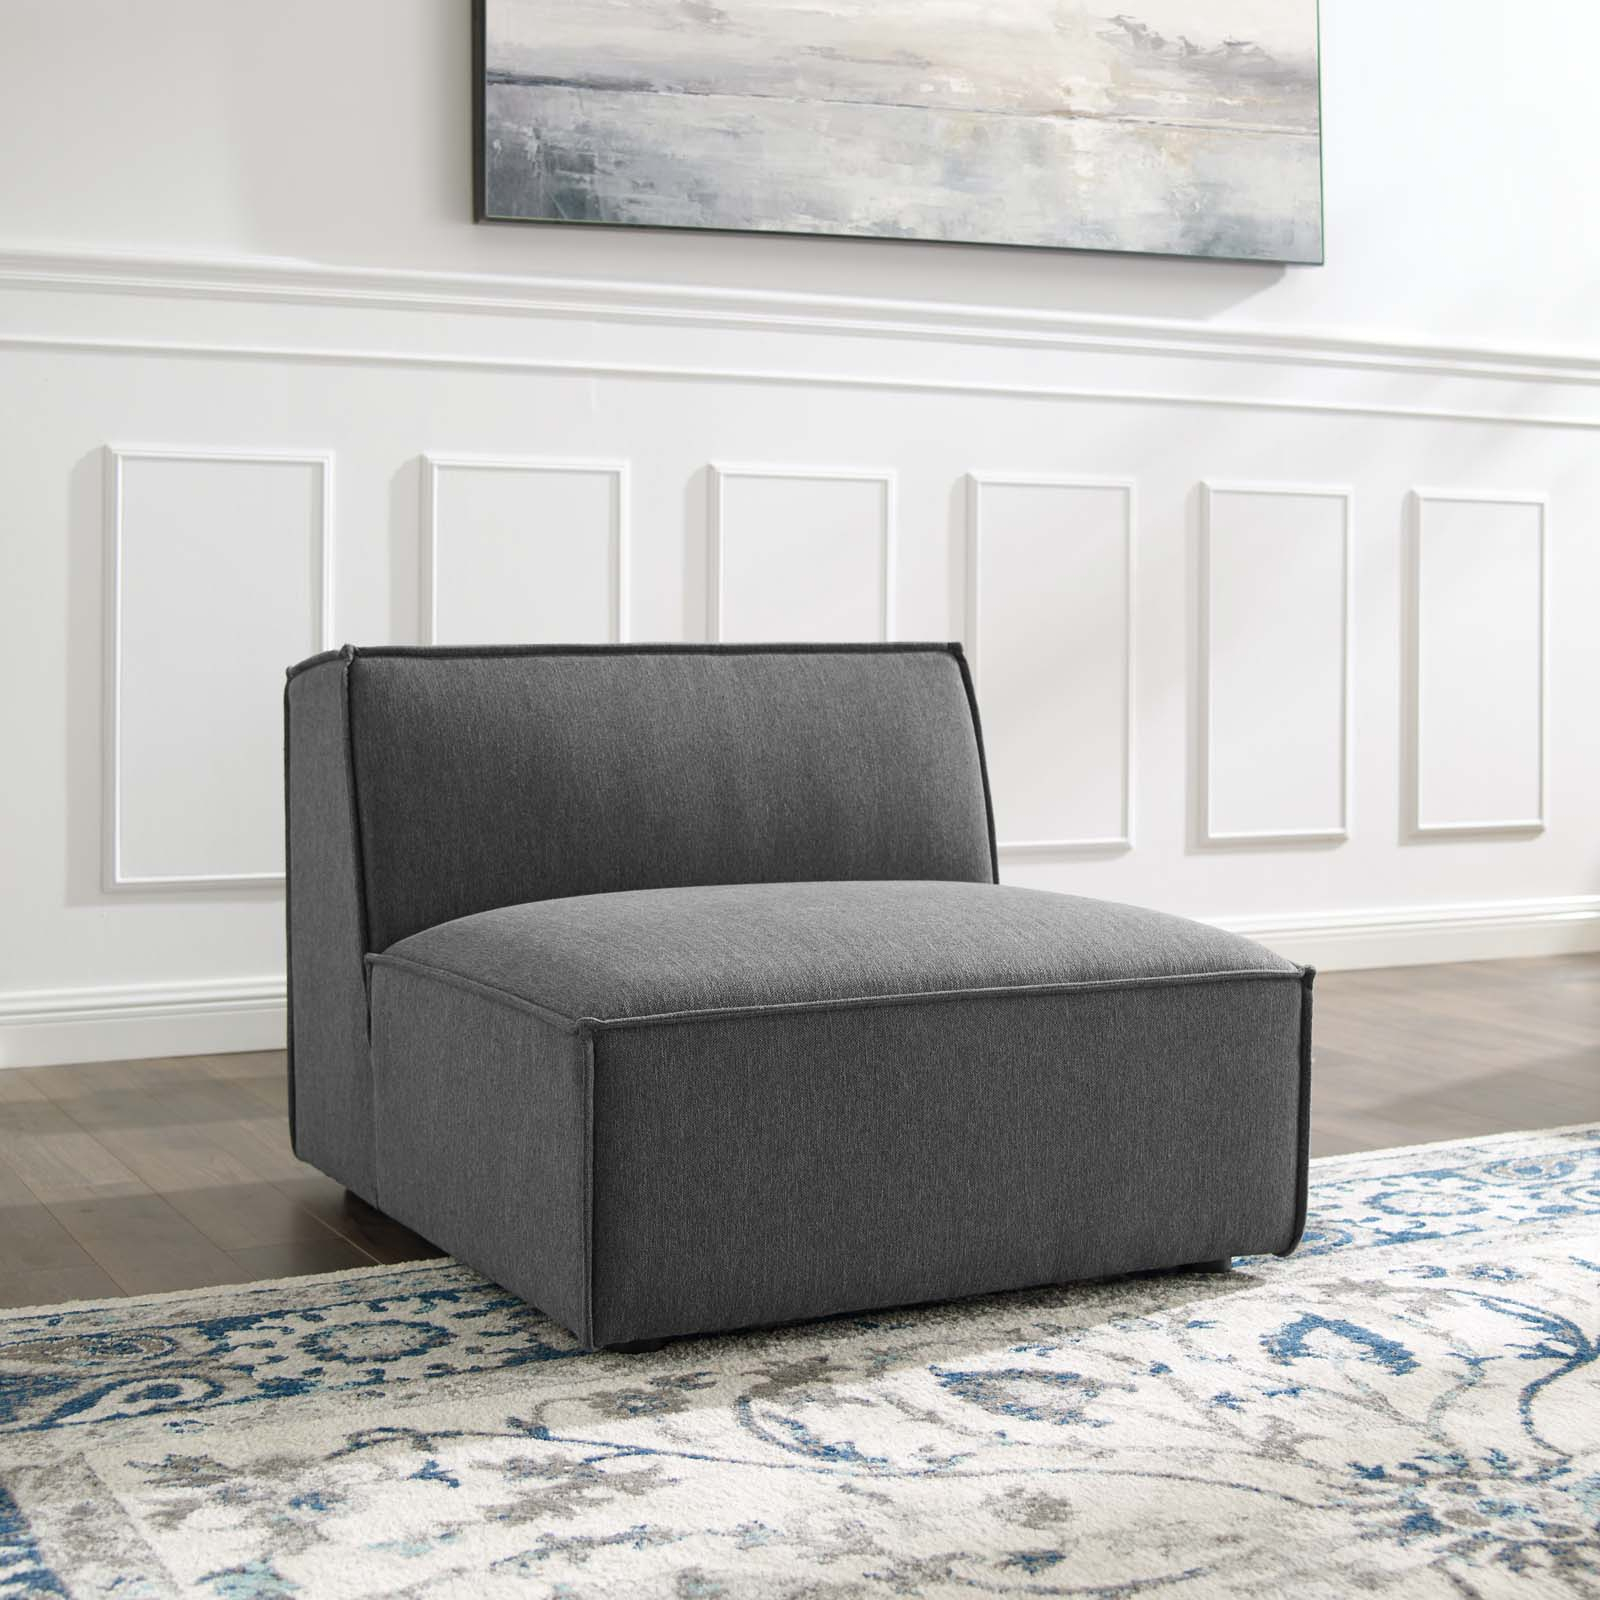 Modway Restore Sectional Sofa Armless Chair, Multiple Regarding Armless Sectional Sofas (View 1 of 15)